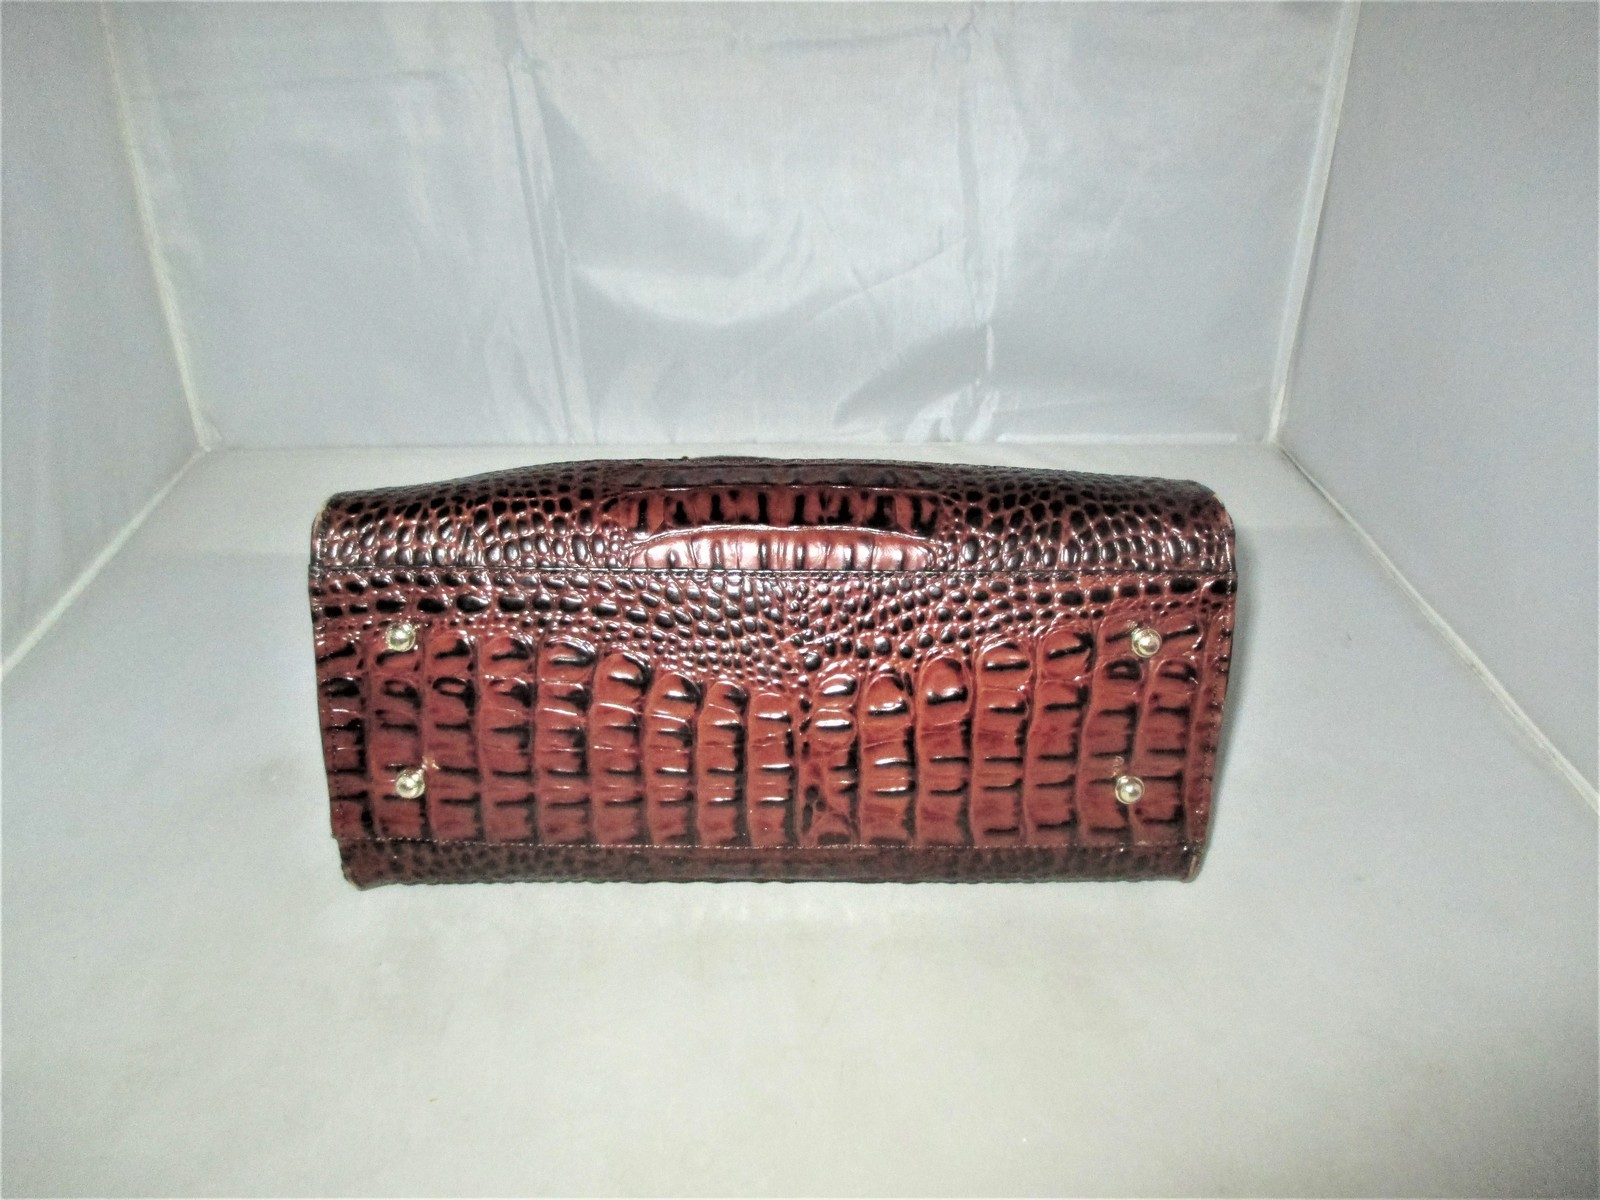 Brahmin Tuscan Tri-Texture Anywhere Convertible Satchel, Shoulder Bag,Tote $255 image 12